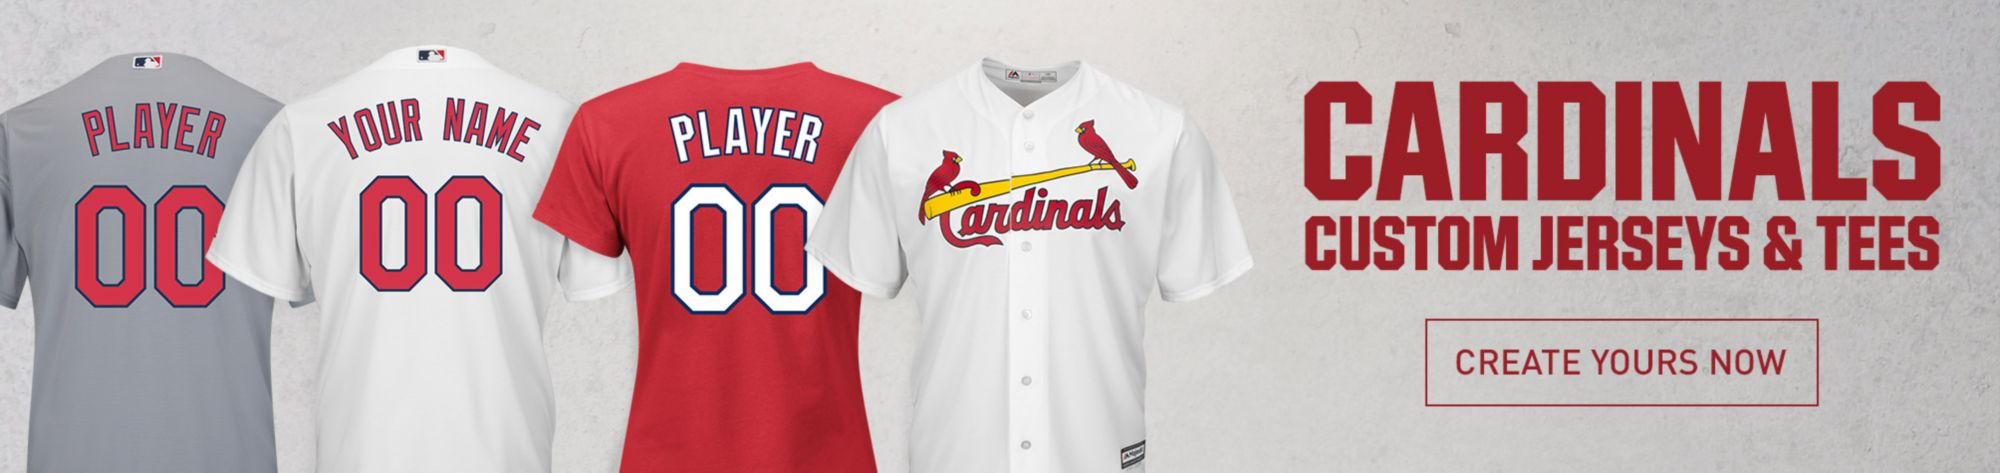 St. Louis Cardinals Apparel & Gear